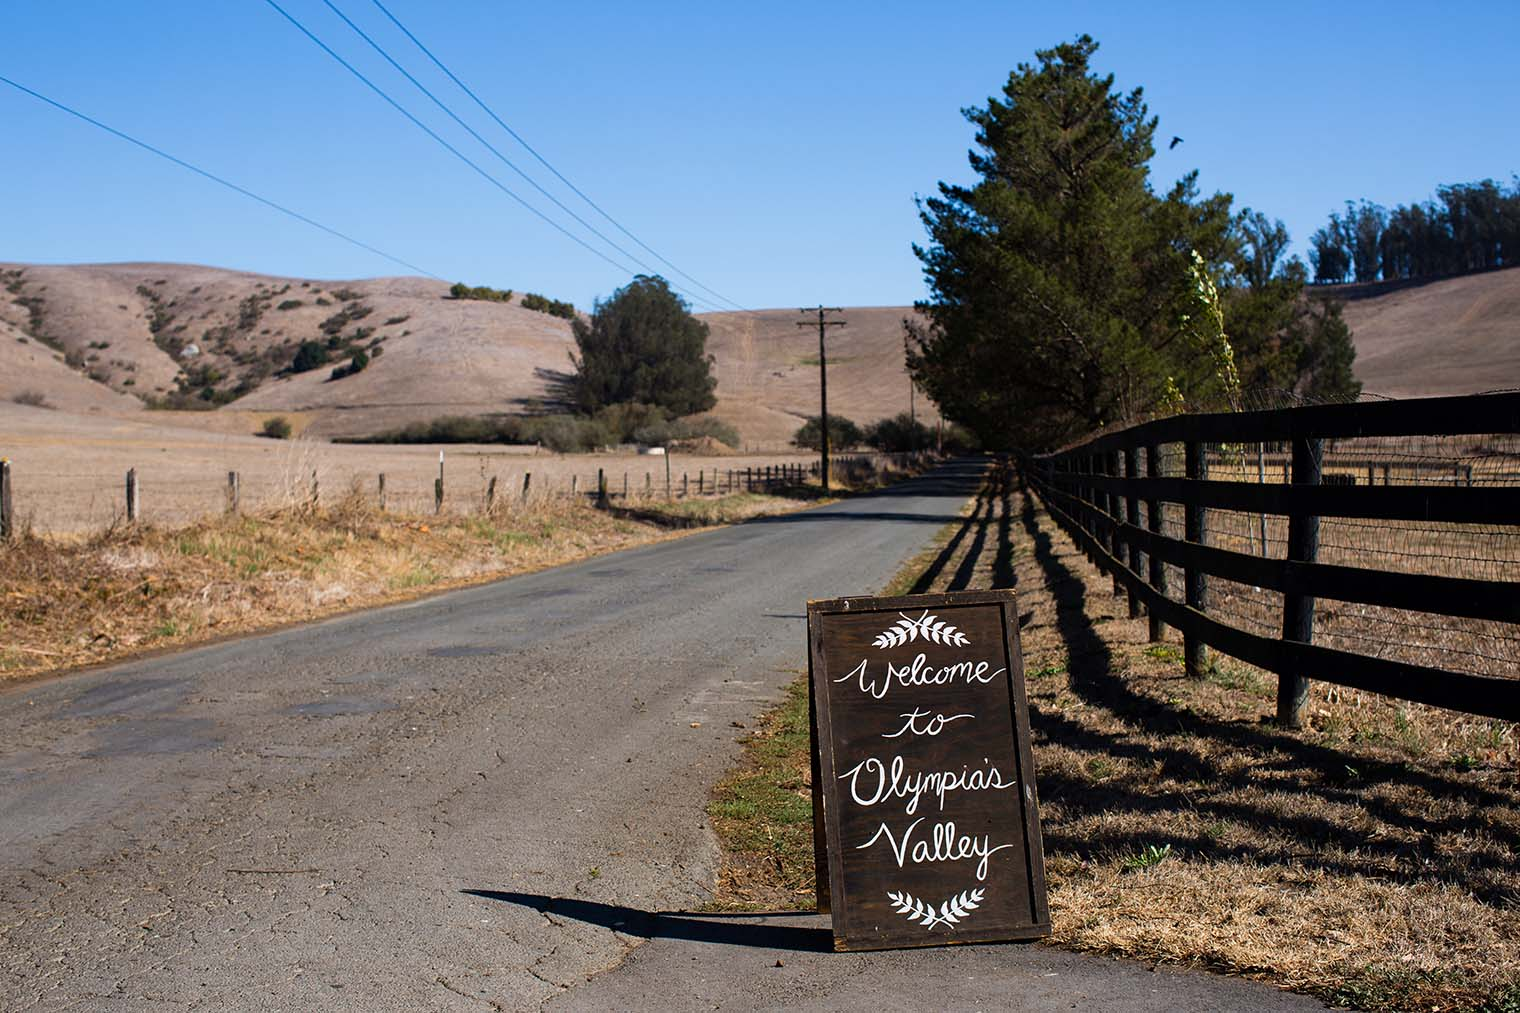 Olympia's Valley Estate Wedding Welcome Sign